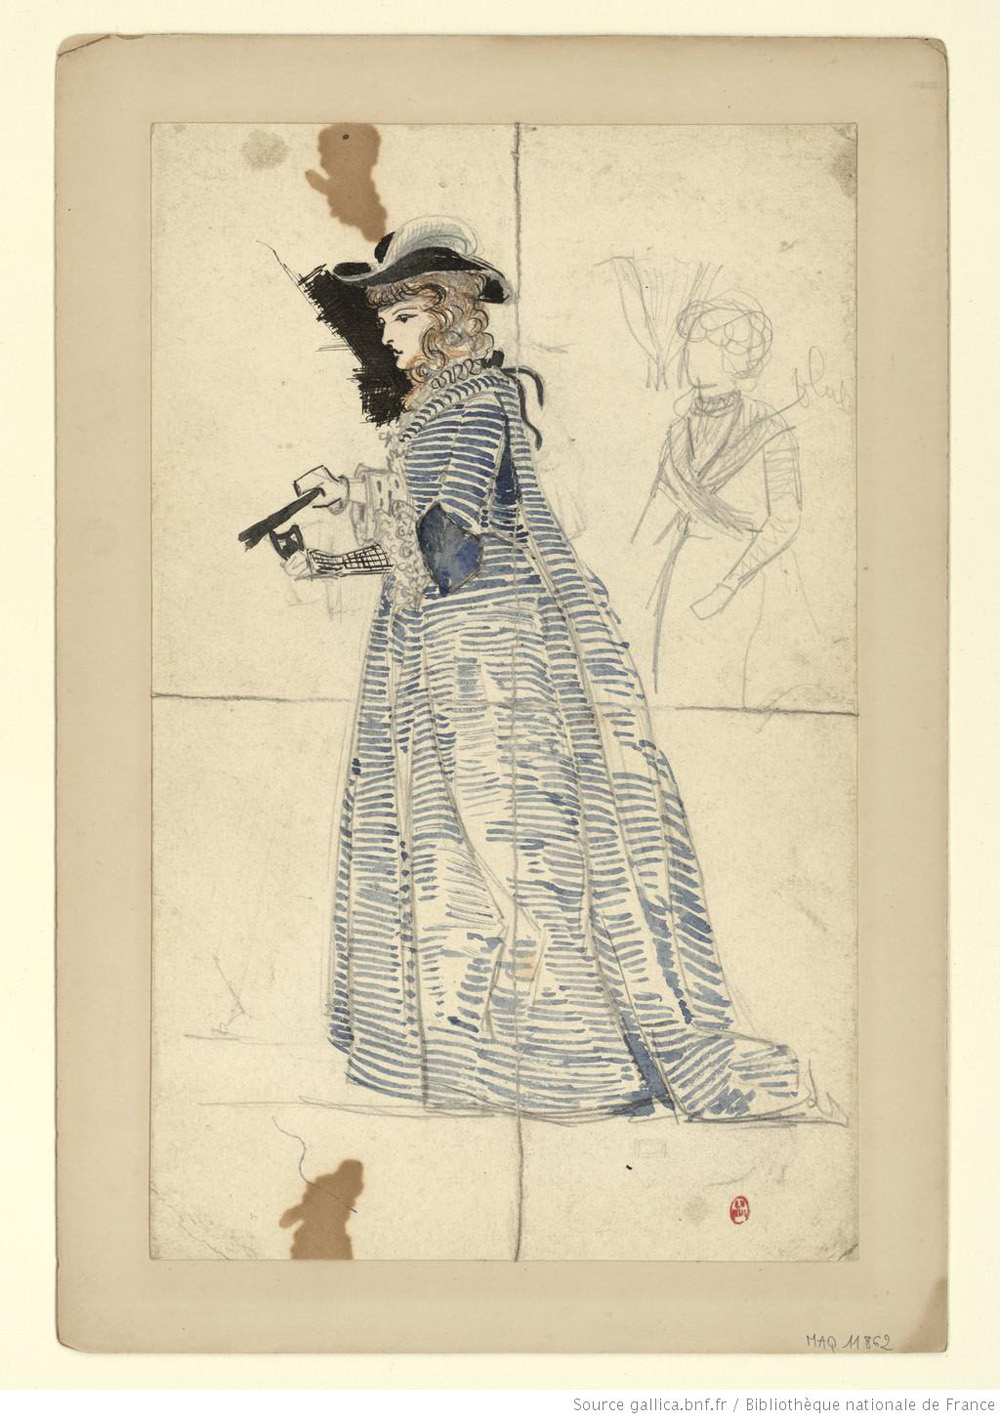 Inspirations de dessin de mode chez Gallica